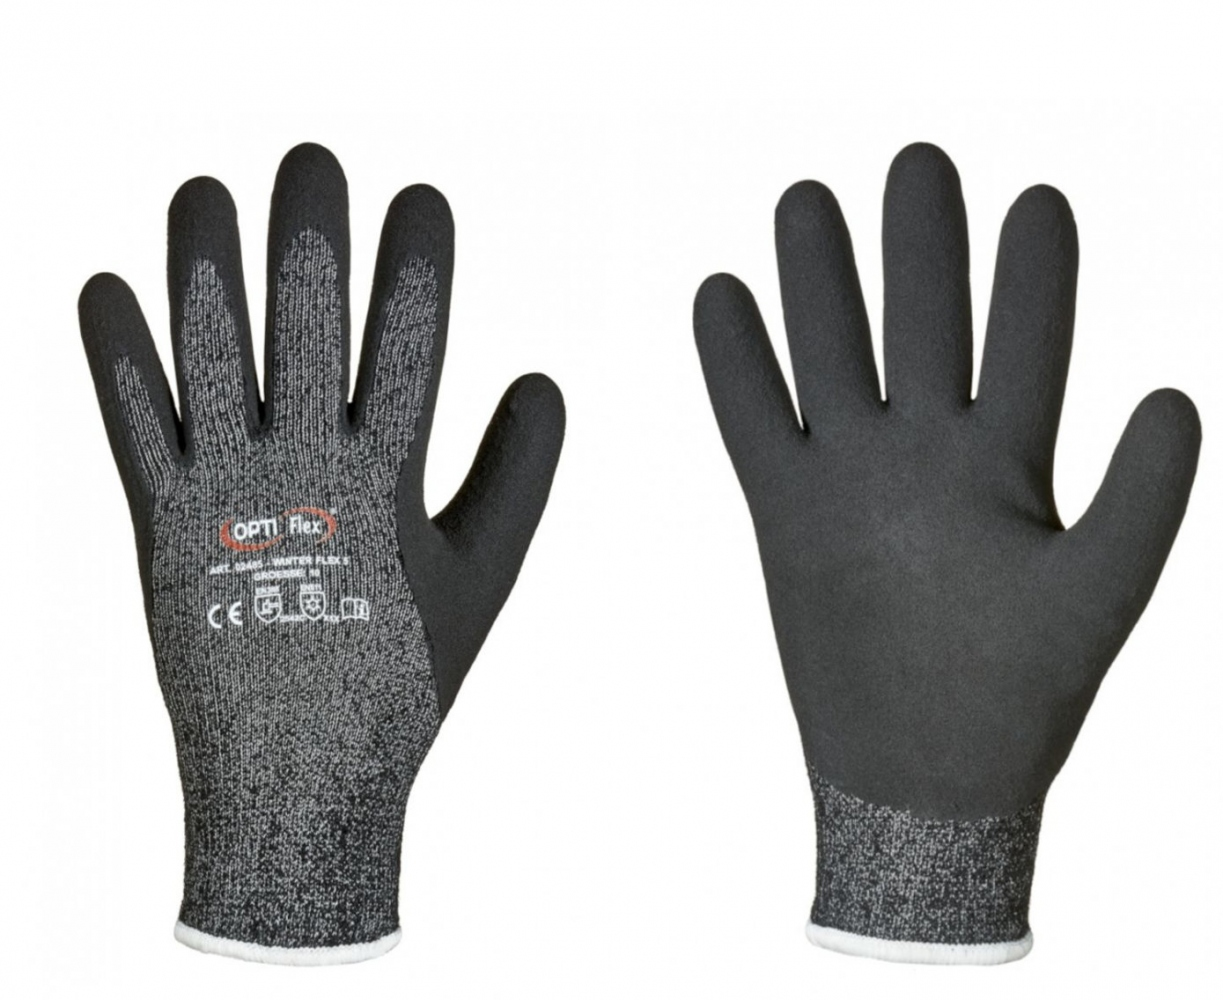 pics/Feldtmann 2016/Handschutz/google/optiflex-02485-winter-flex-5-premium-cut-resistant-gloves2.jpg